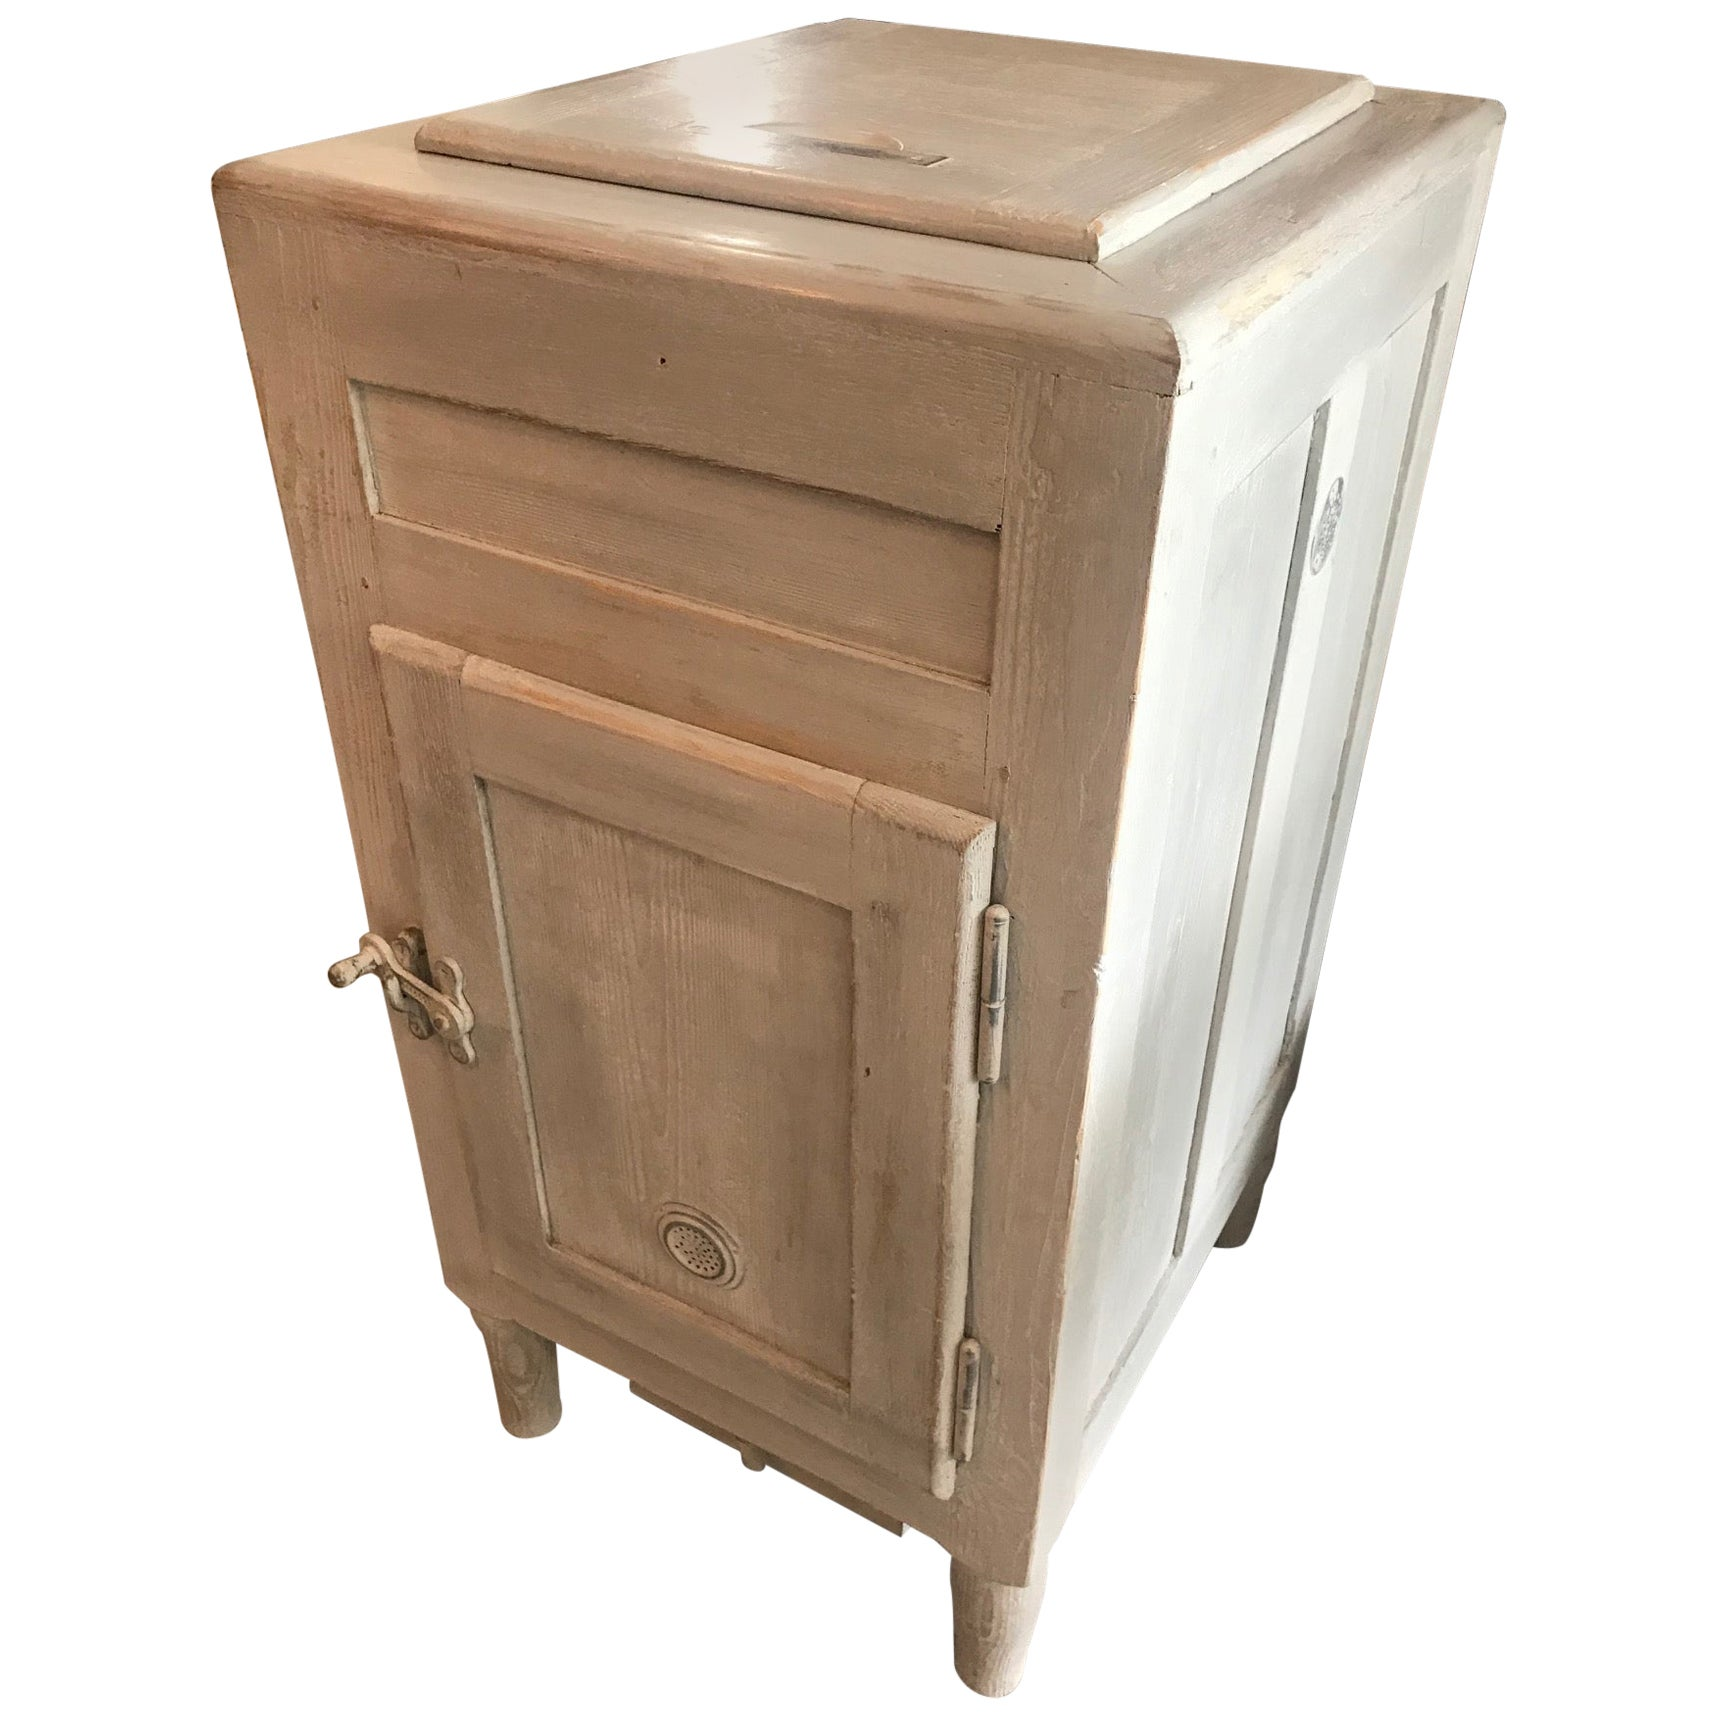 20th Century French Cooler or Fridge, 1900s